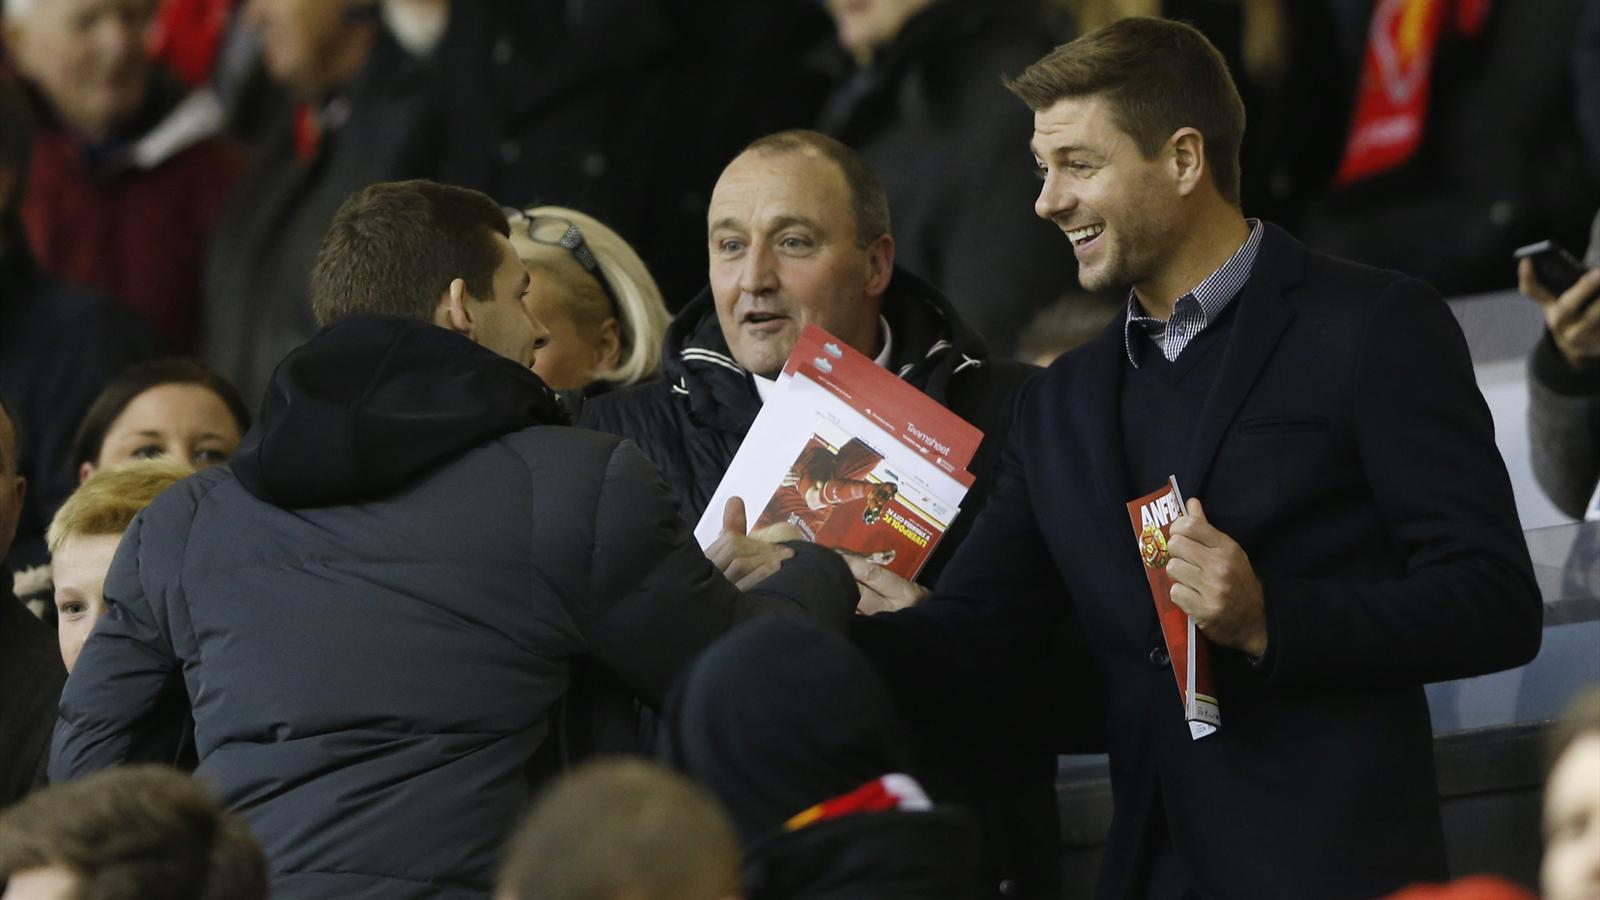 Steven Gerrard, back at Anfield to watch Liverpool face Swansea